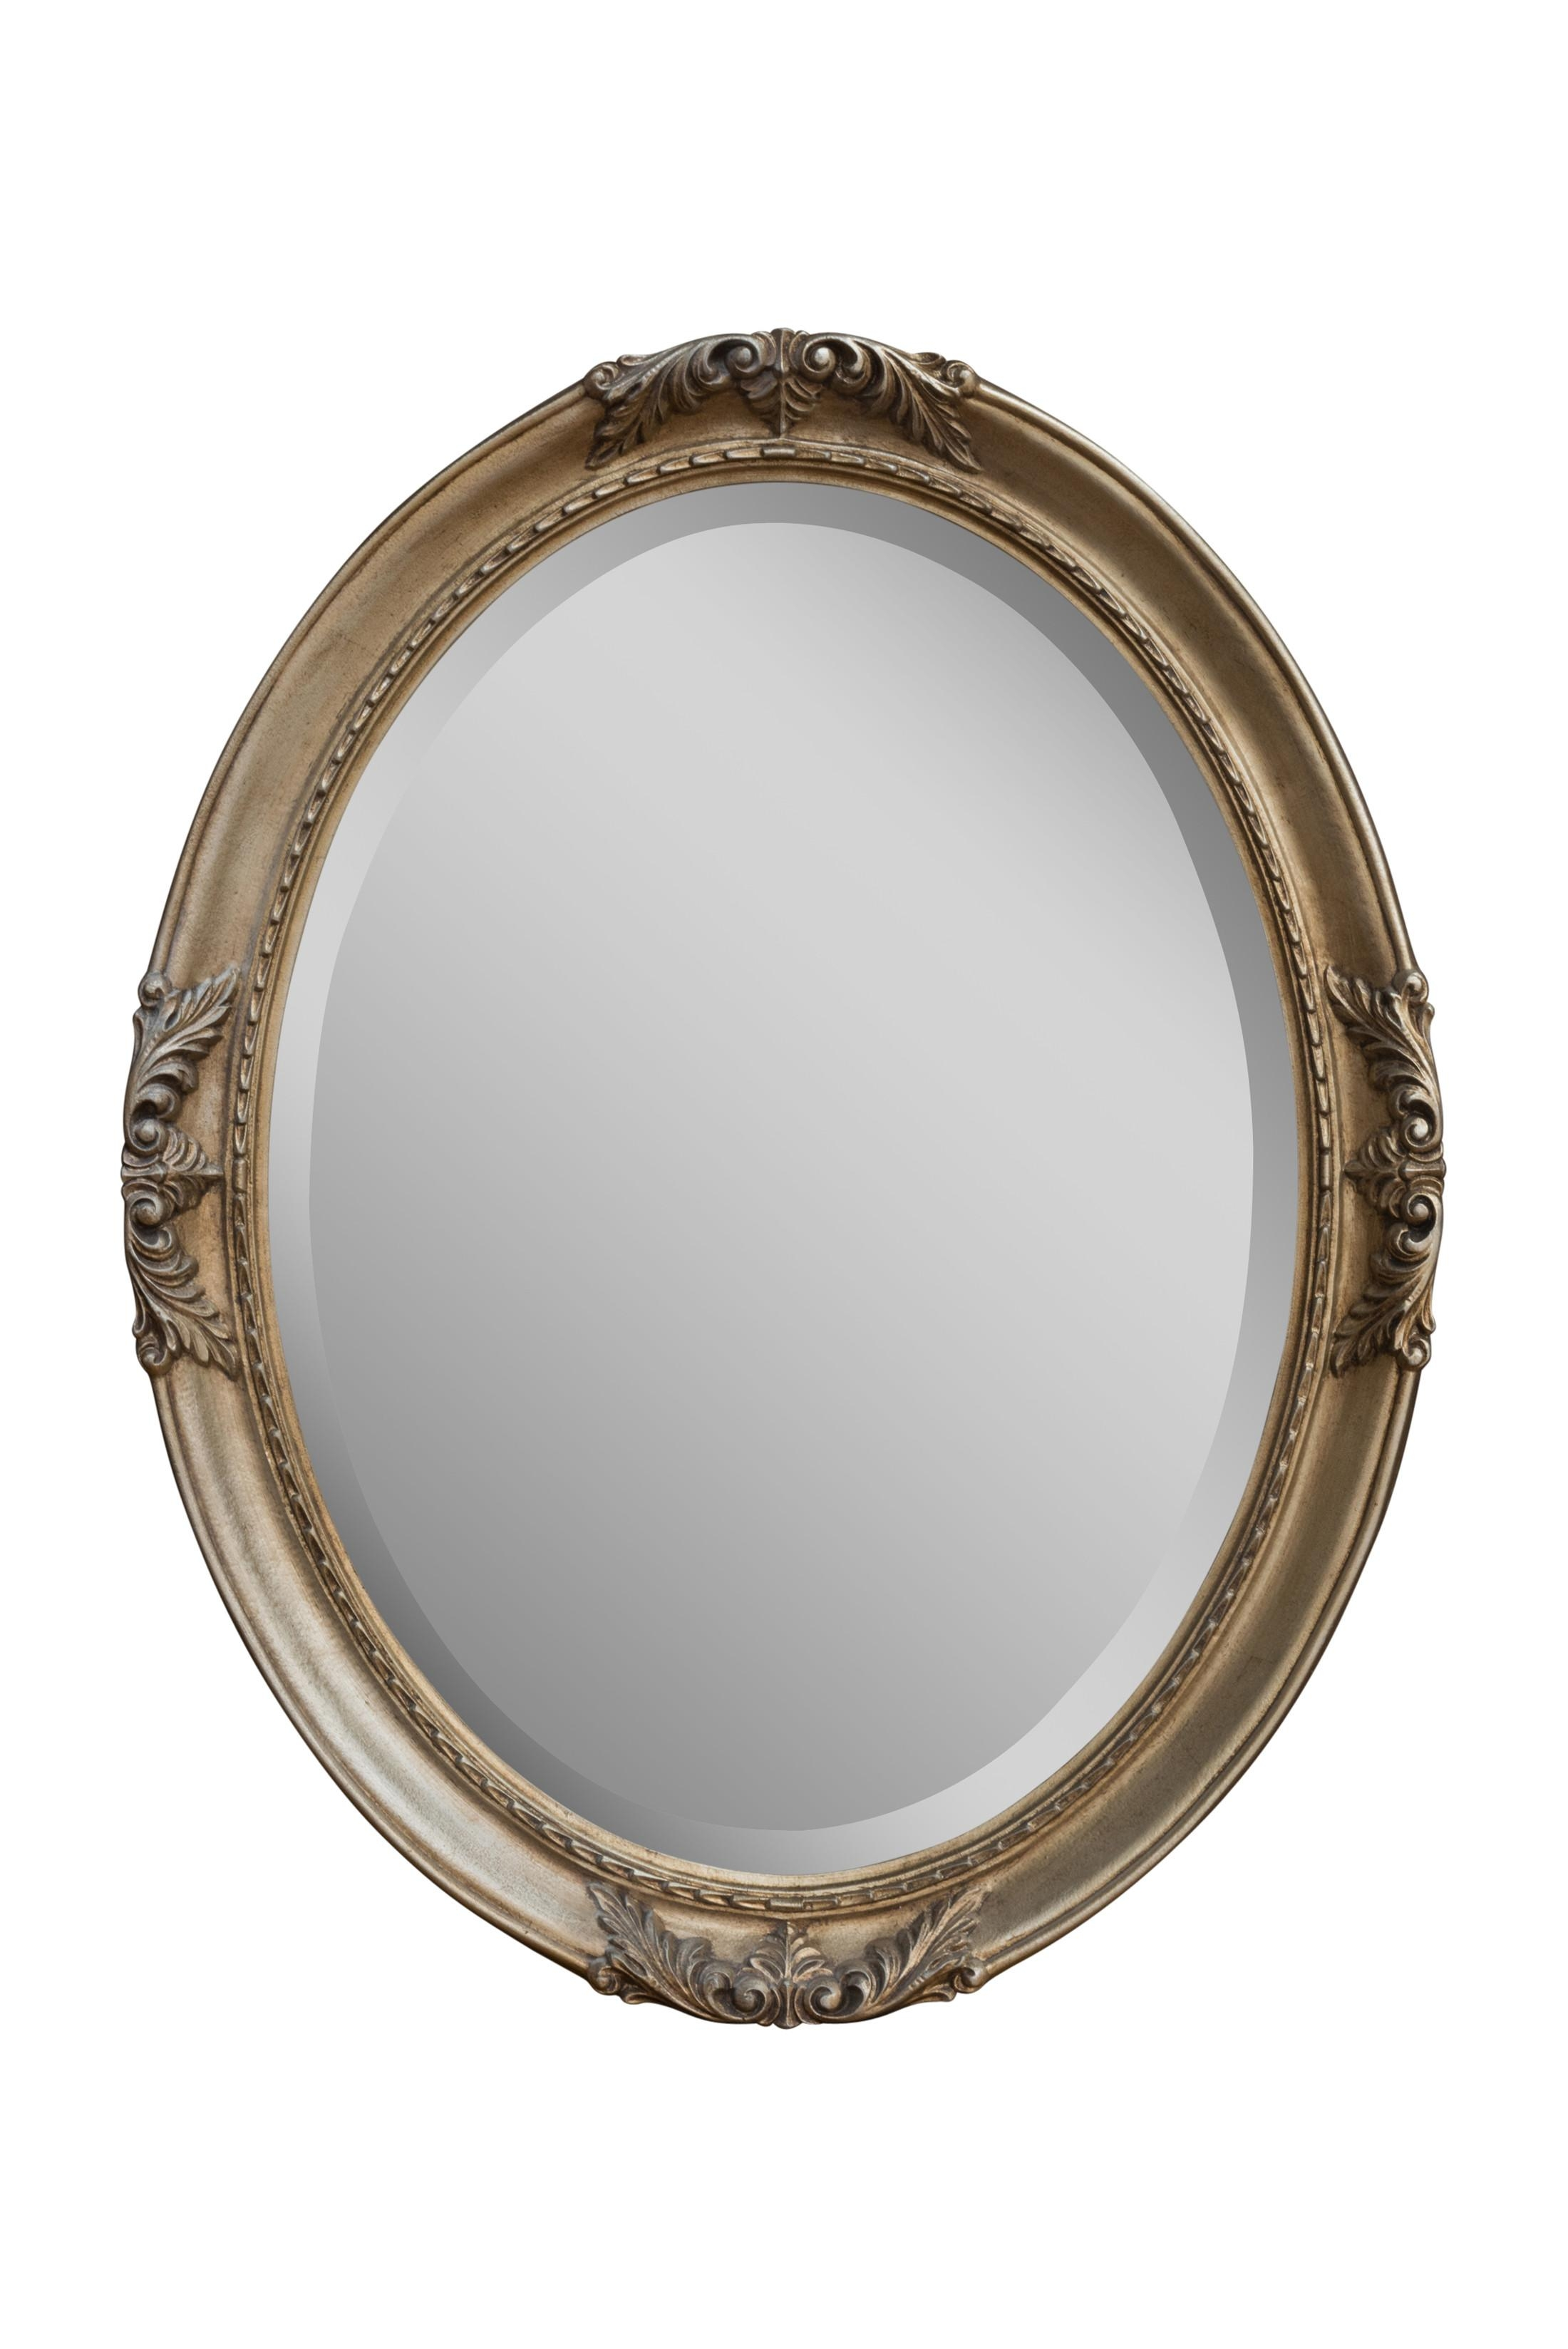 Silver Flora Oval | Bedroom Mirrors For Sale – Panfili Mirrors With Oval Silver Mirror (Image 11 of 20)